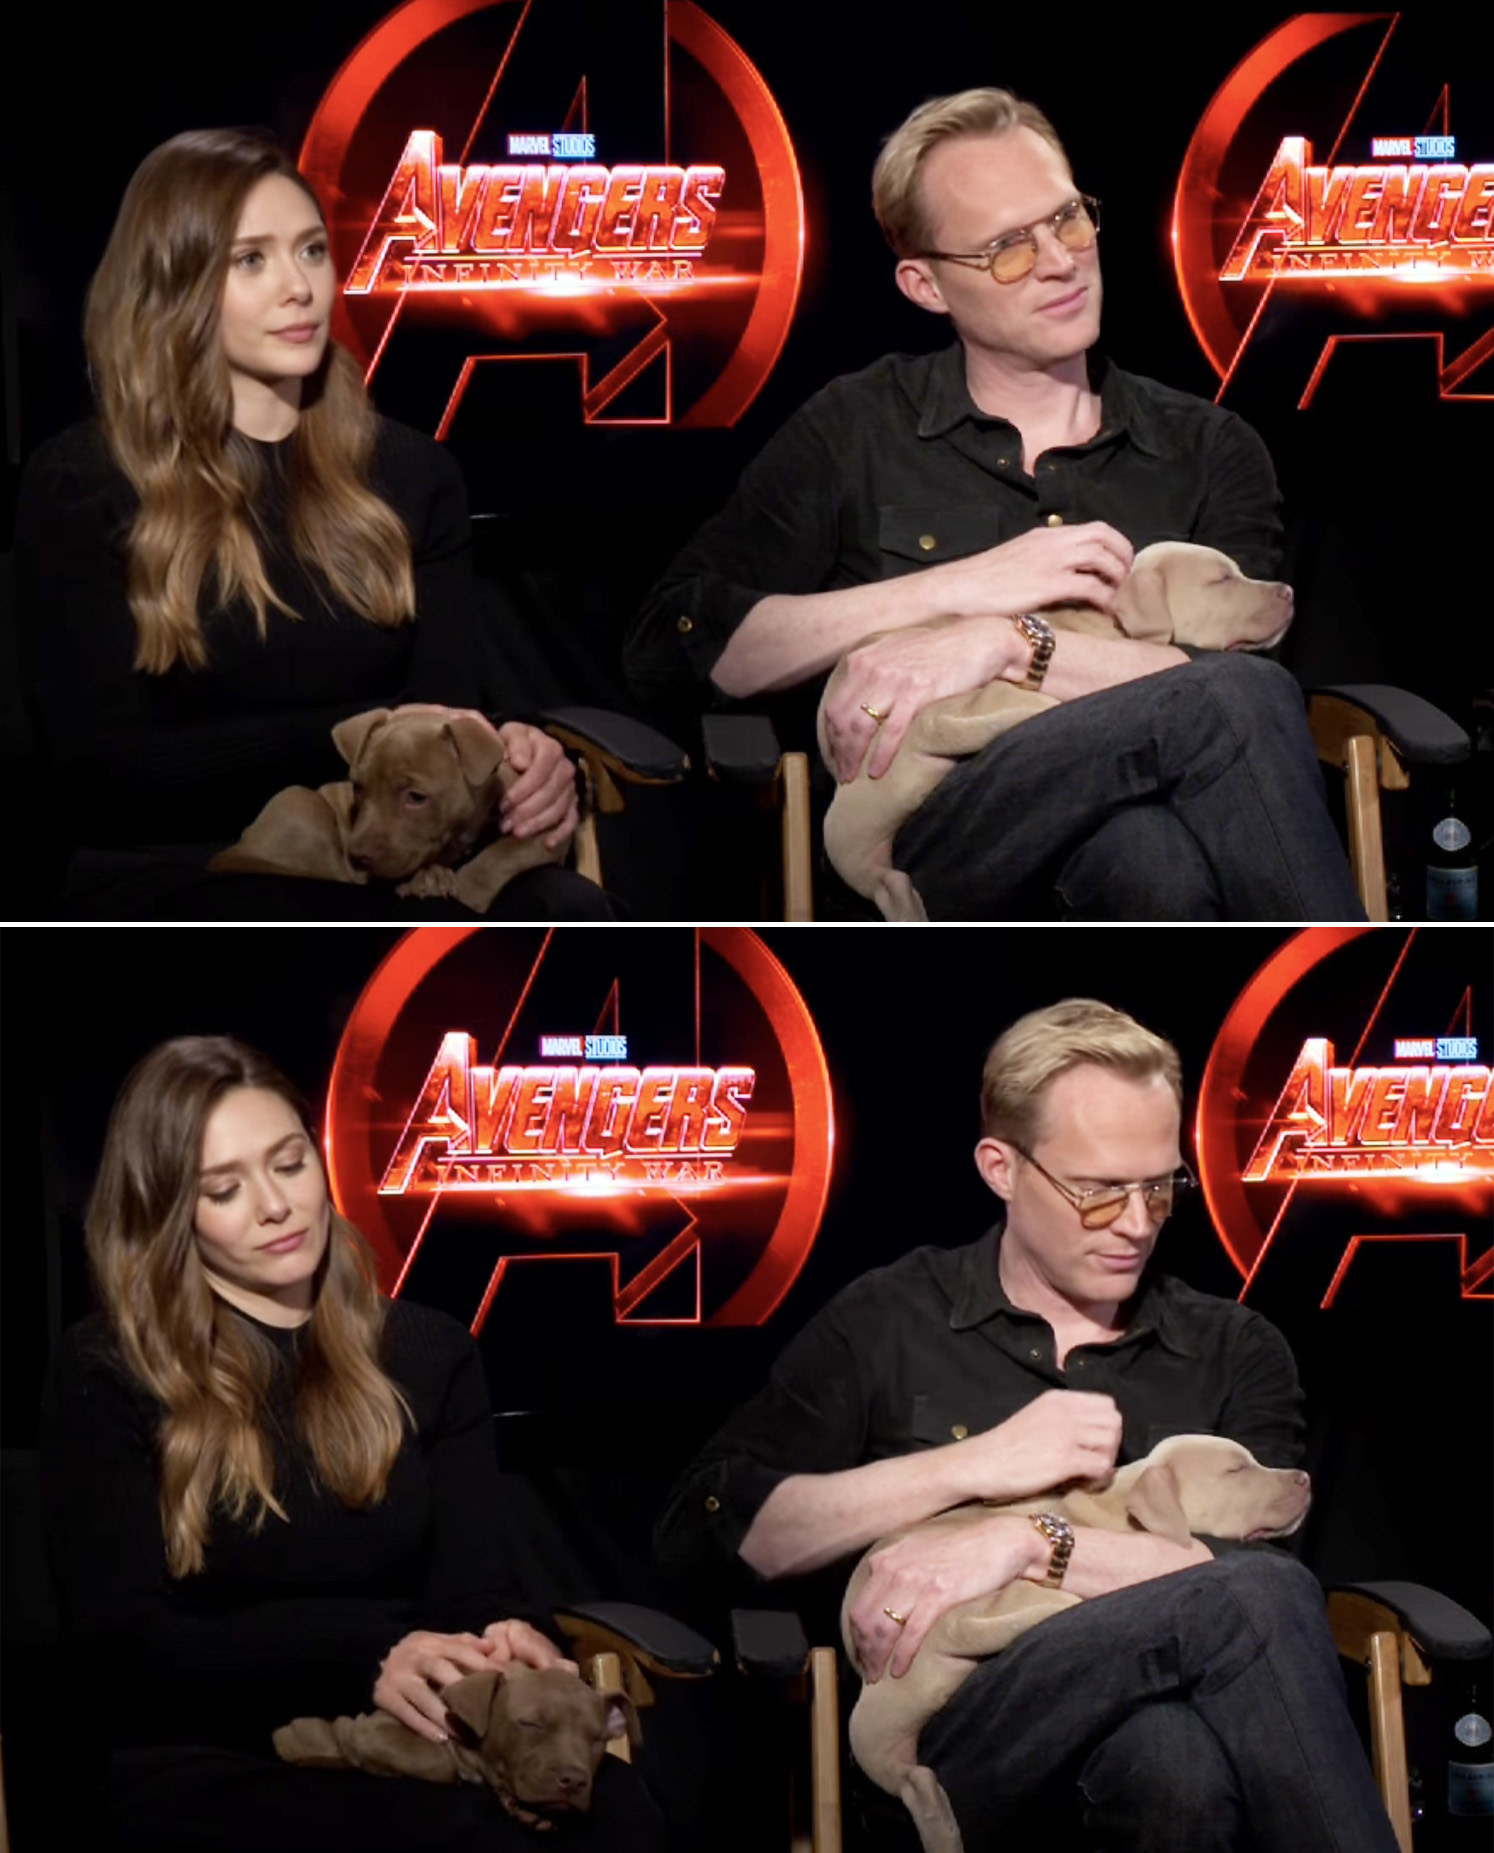 Lizzie and Paul petting two dogs